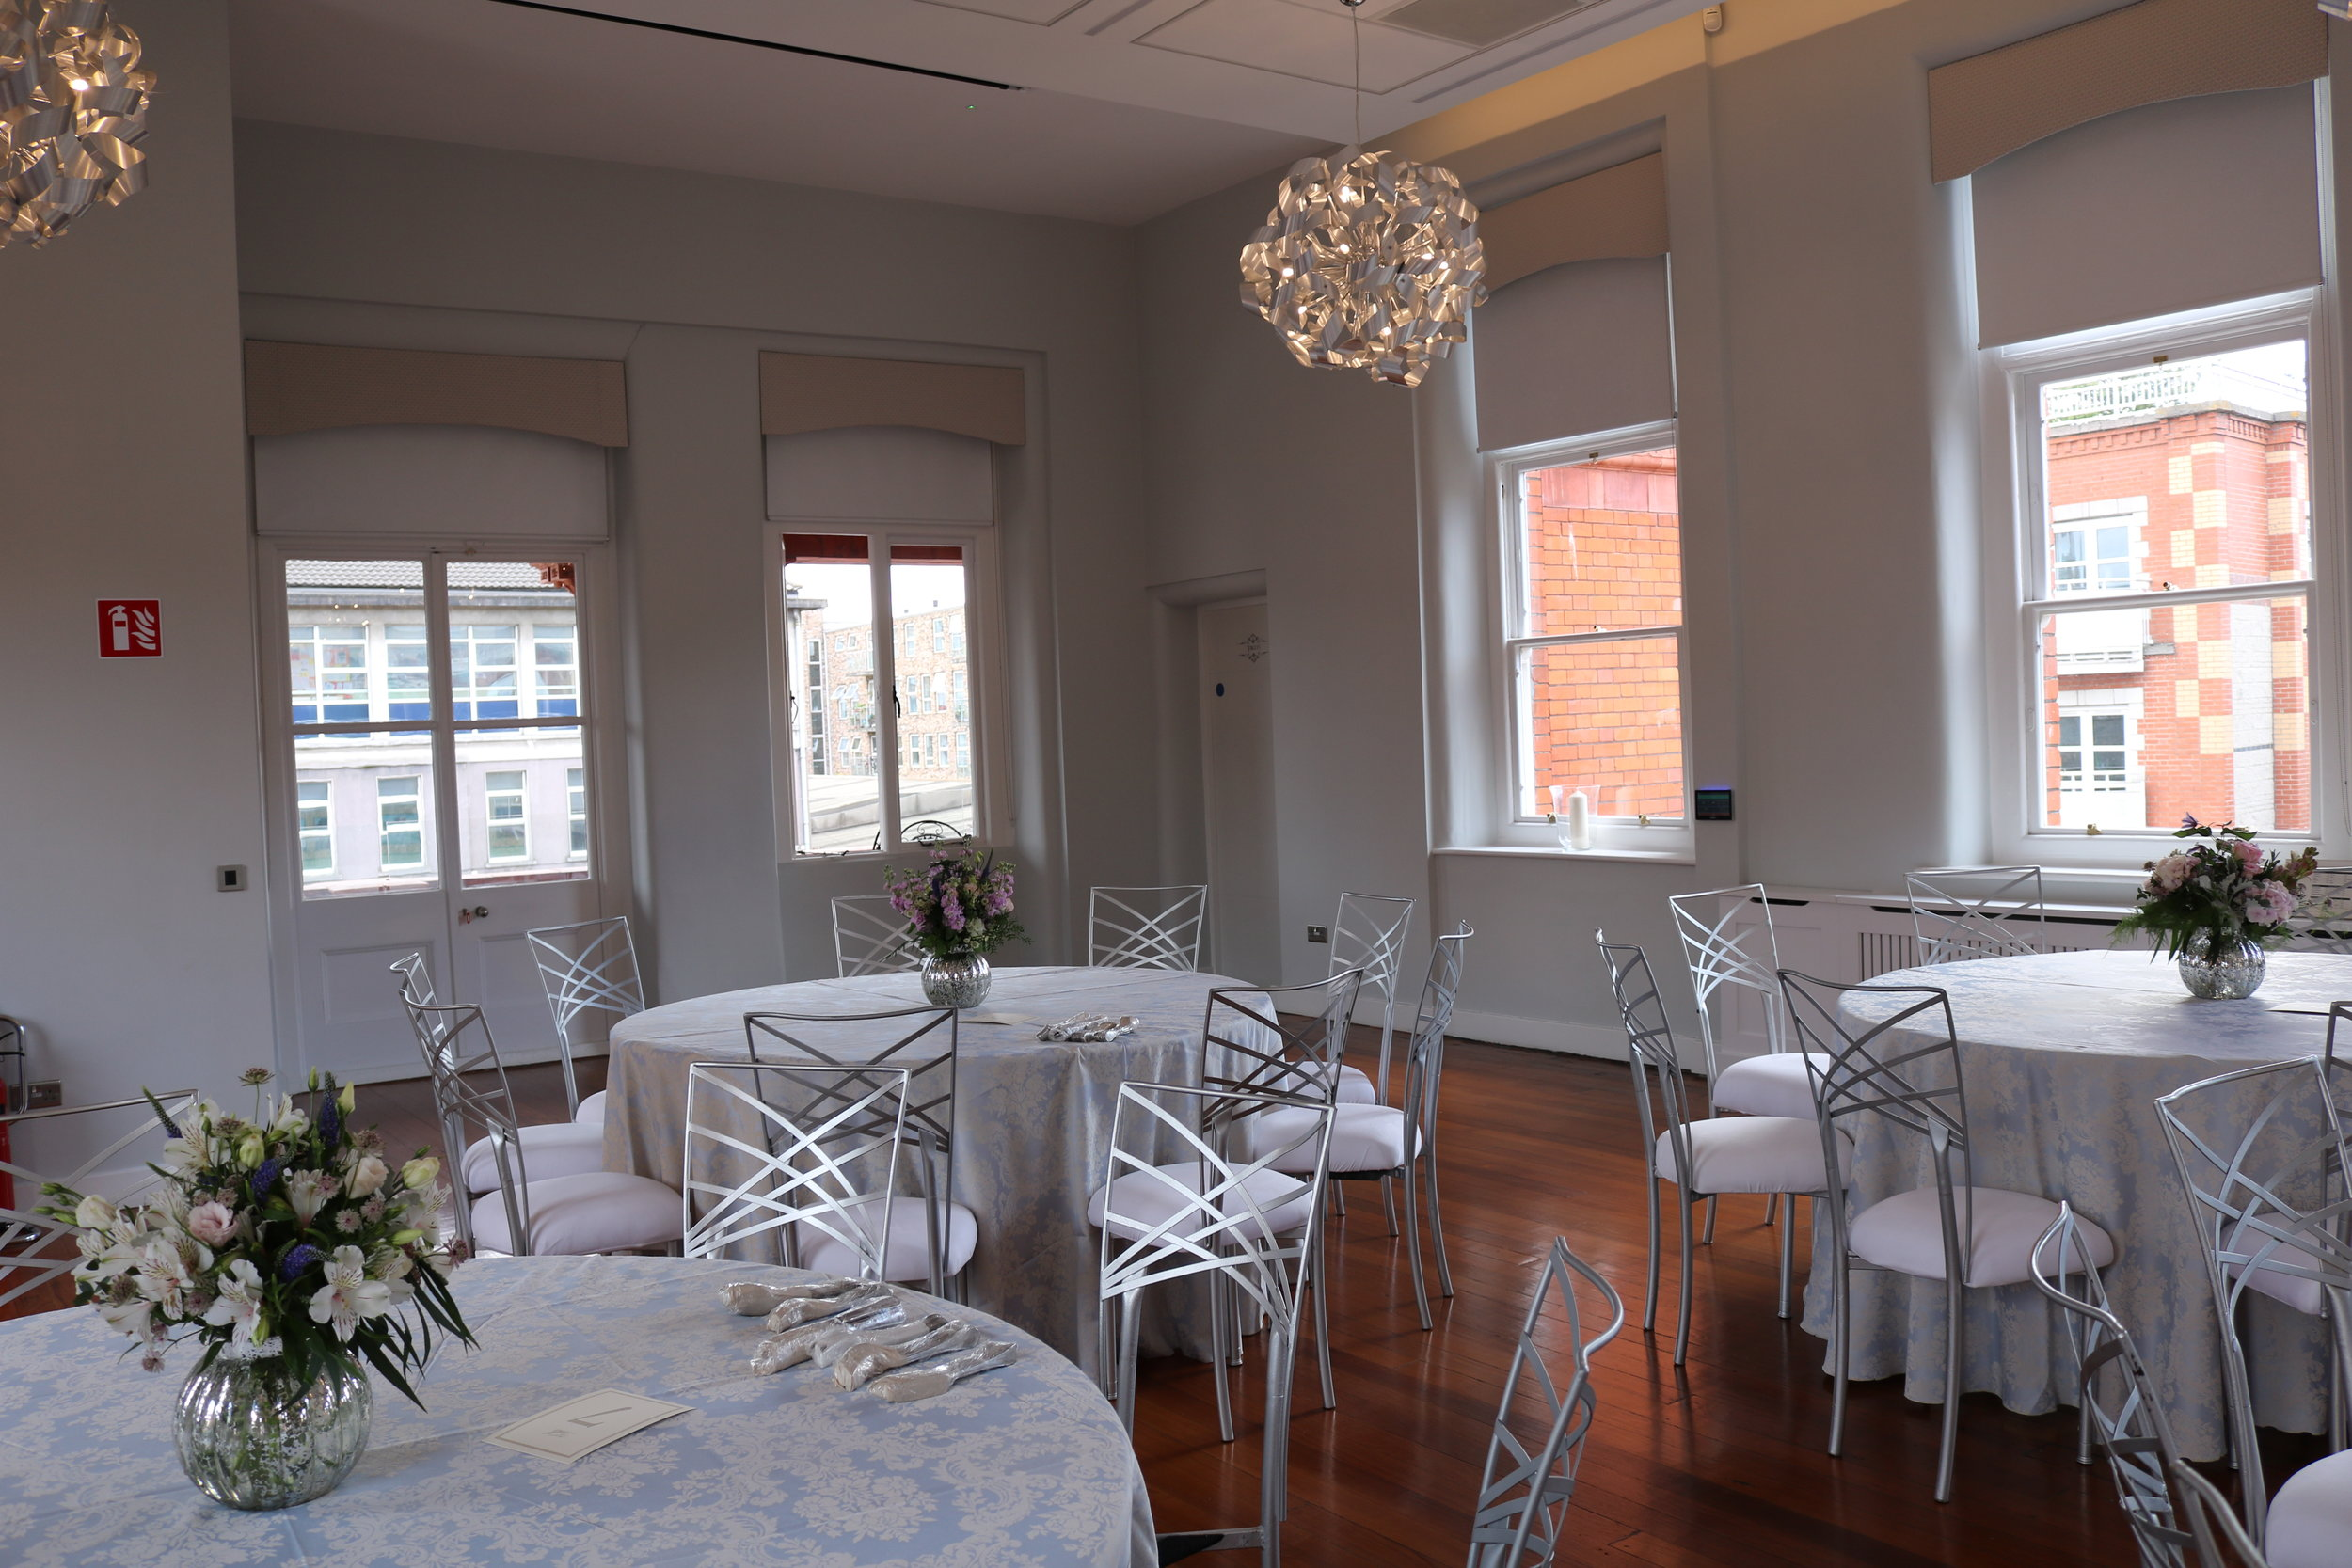 Banqueting Room - Click the button below and our dedicated team will get back to you